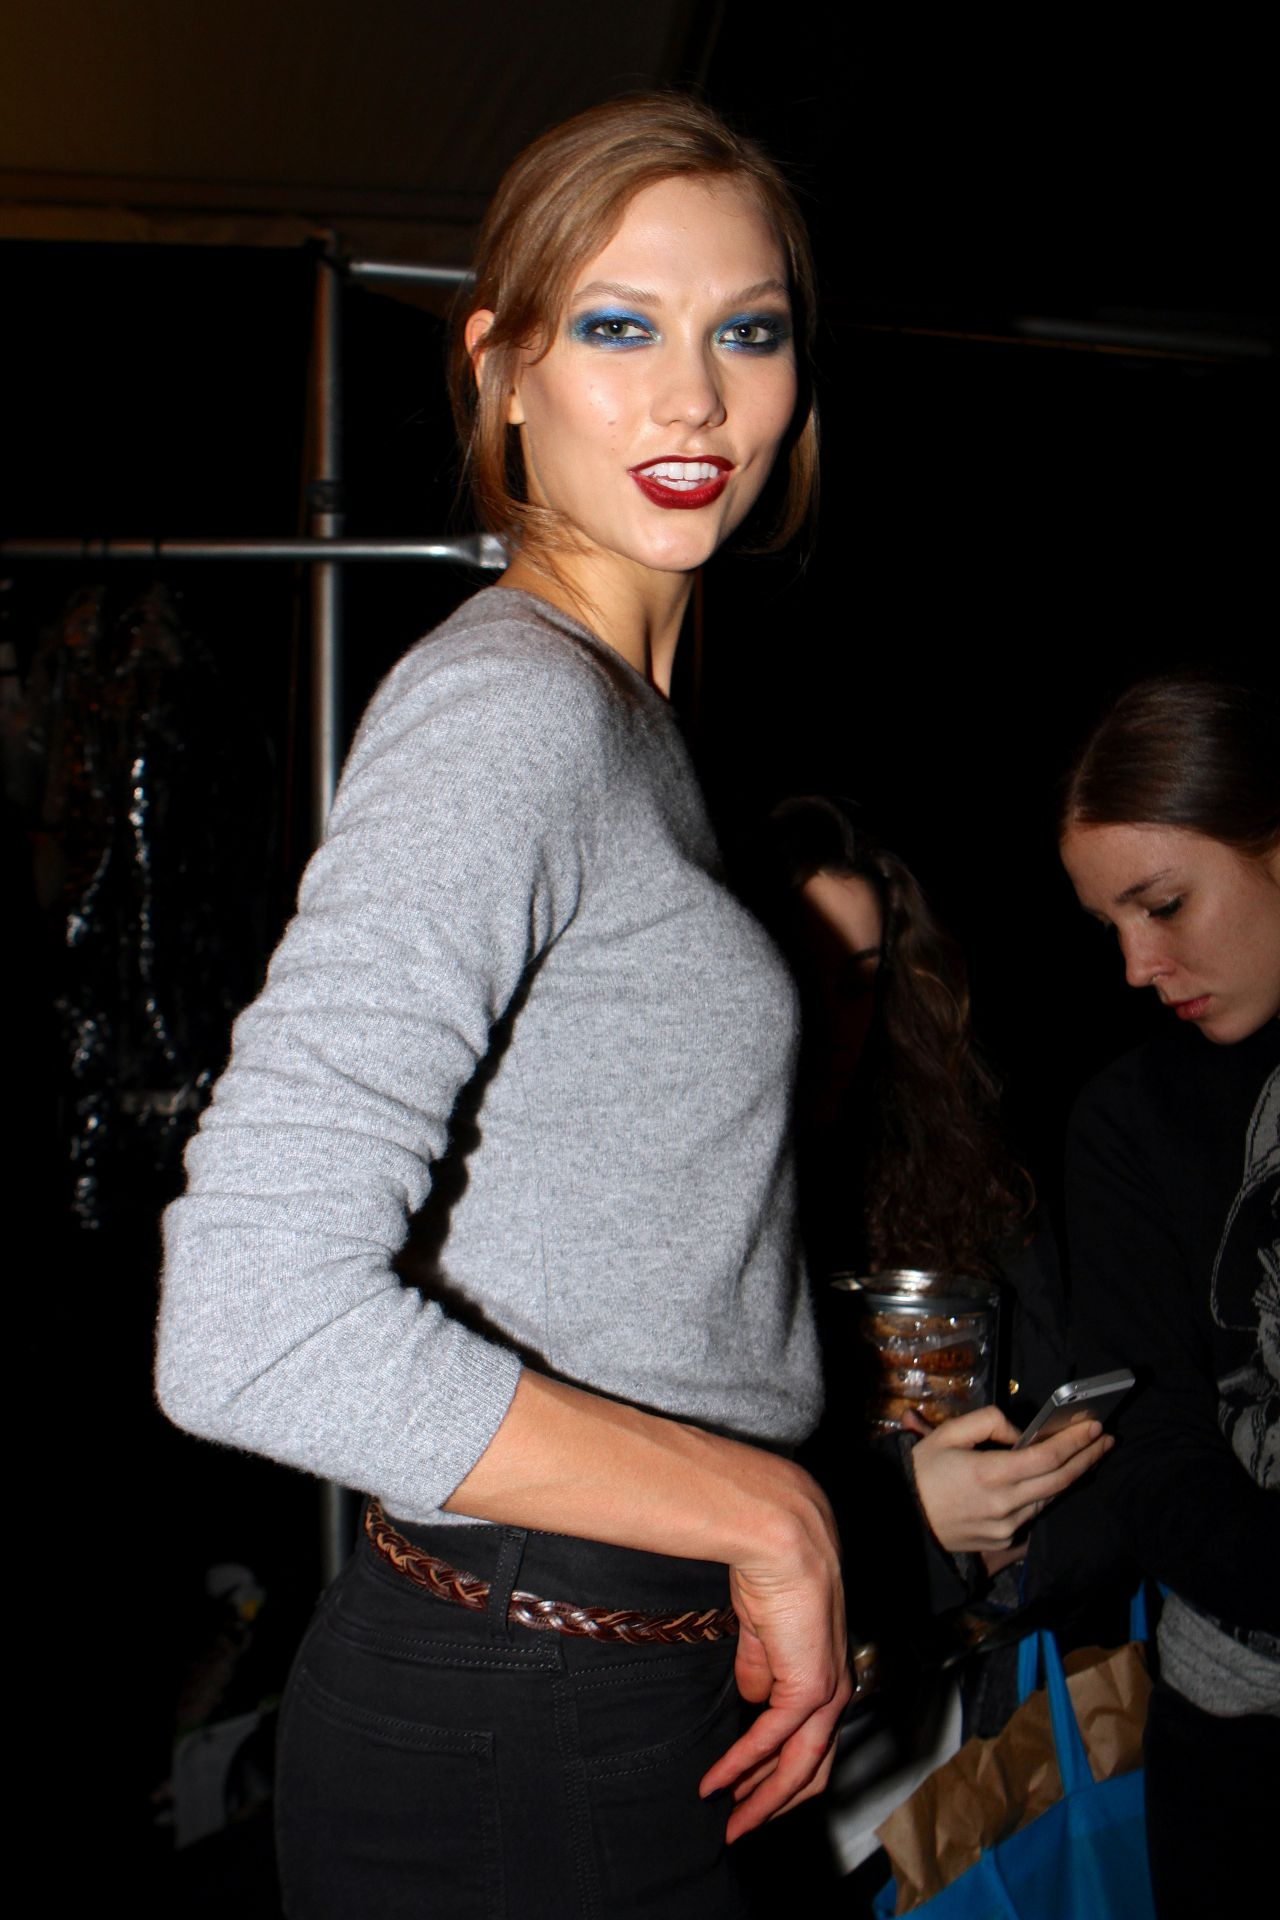 Karlie Kloss - Mercedes-Benz Fashion Week Fall 2014 in New York City, Feb. 2014